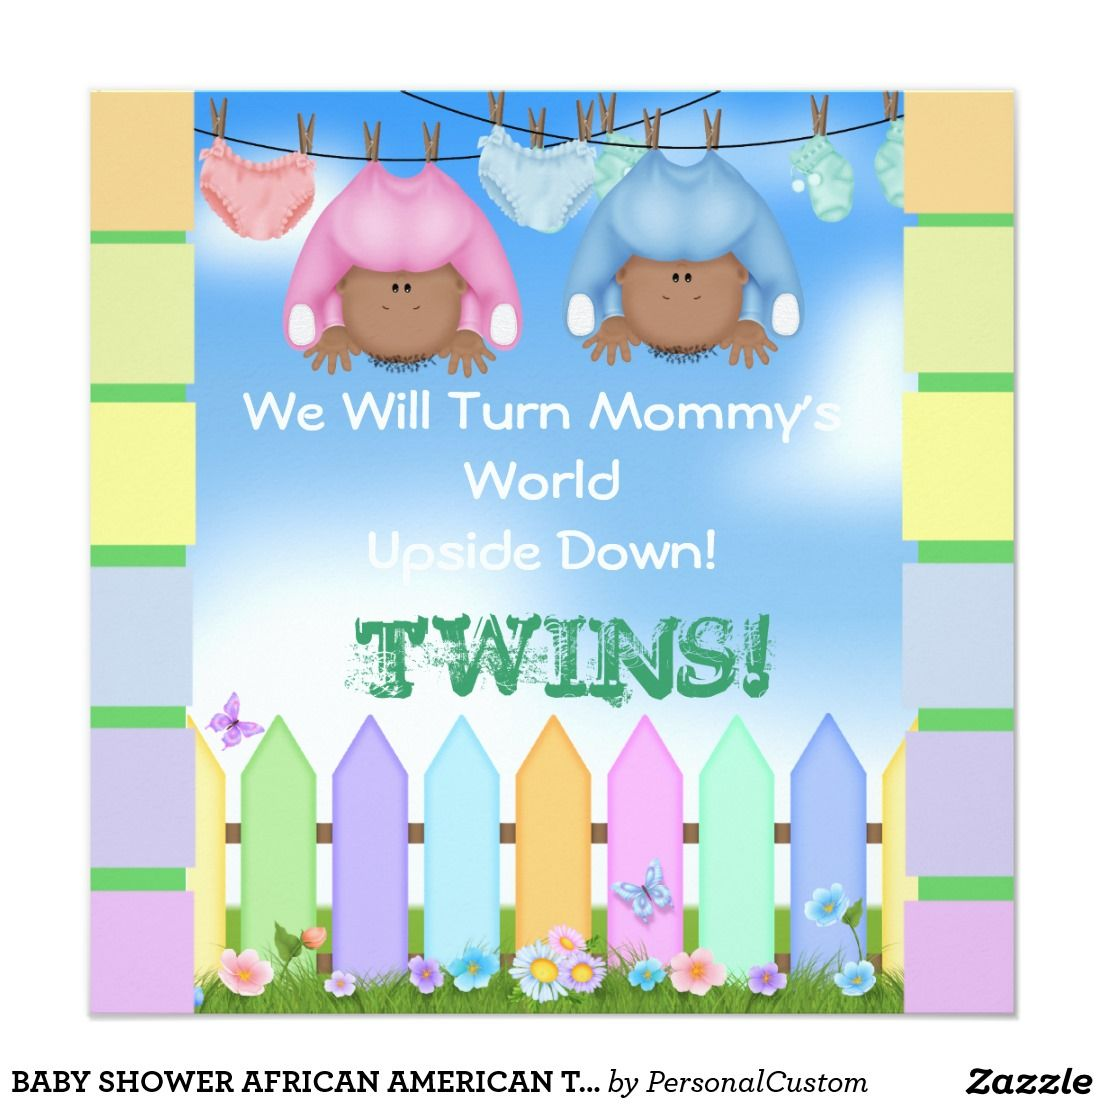 BABY SHOWER AFRICAN AMERICAN TWIN BOY & GIRL INVITATION | showerNTA ...